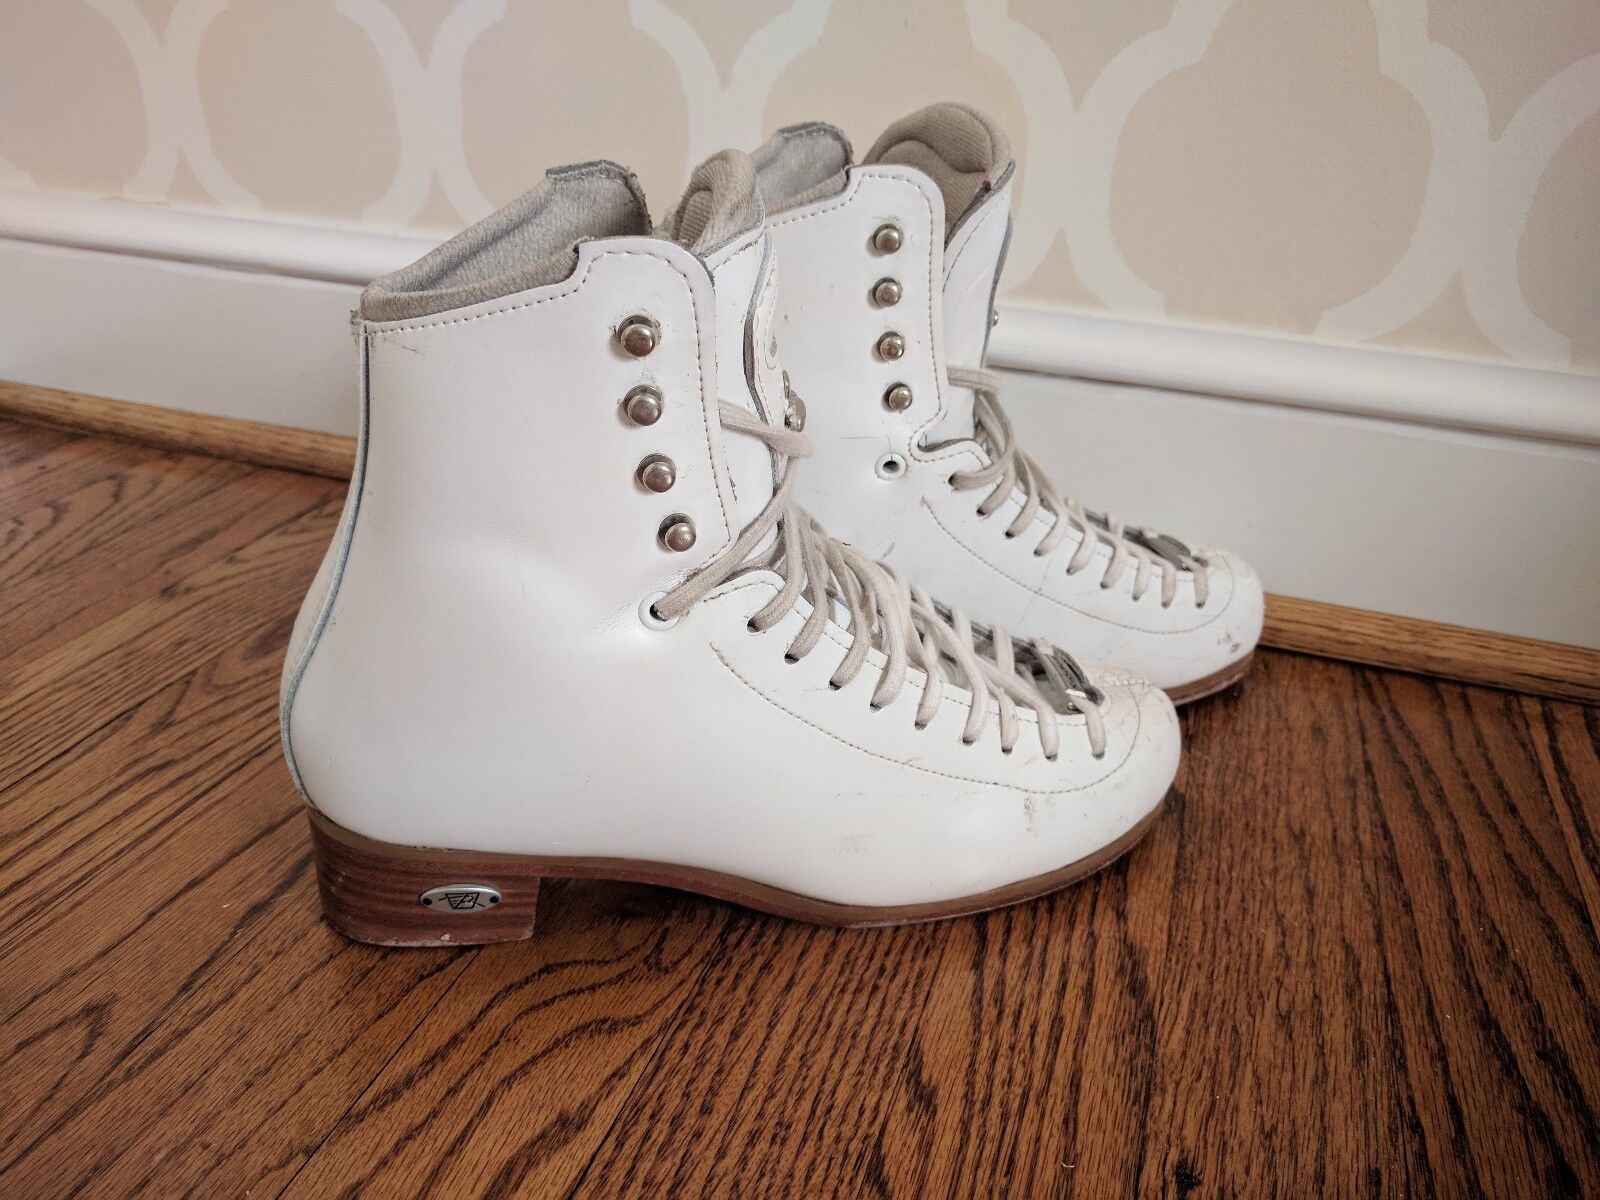 Reidell 255 Motion Ice Skating Boots Ladies Size 5.5 Narrow